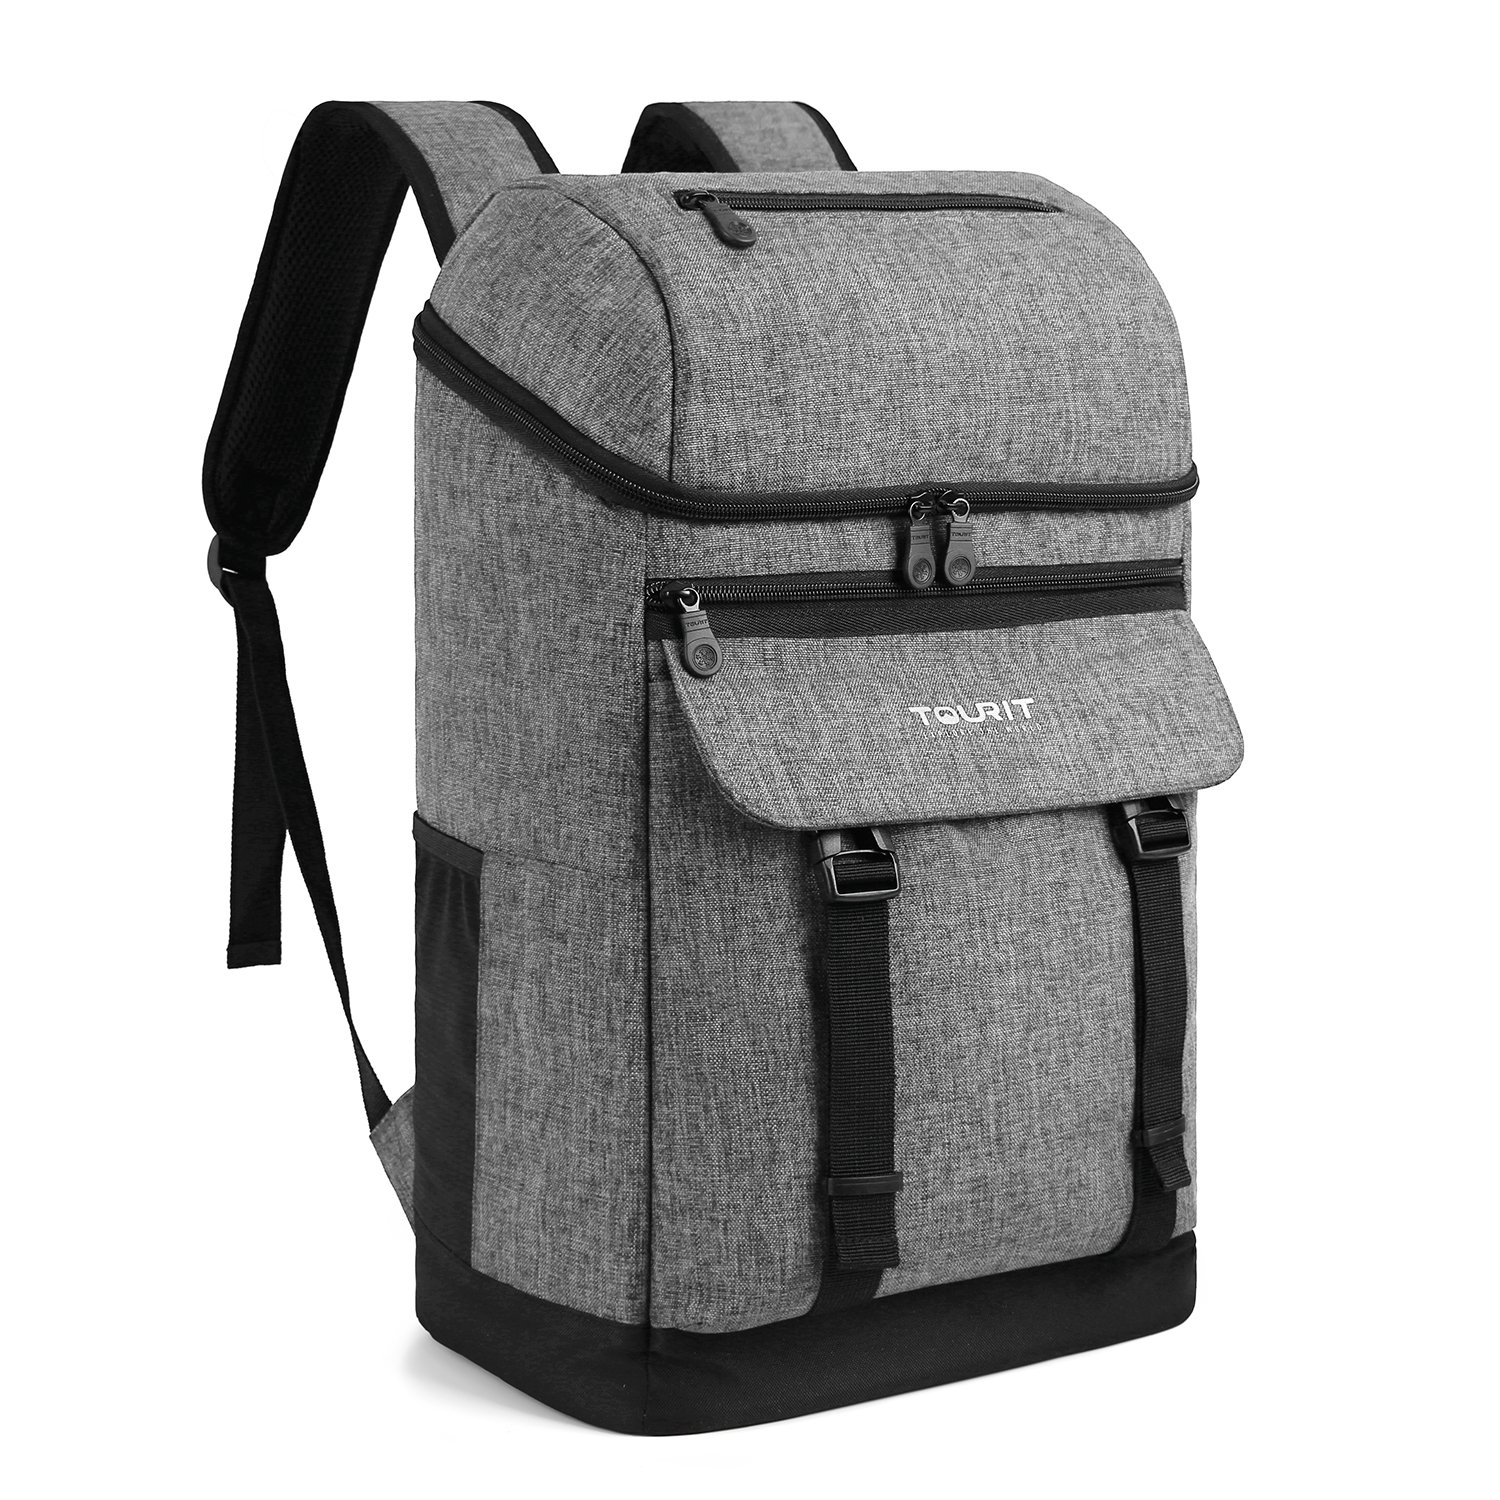 TOURIT Soft Backpack Cooler Bag Insulated Picnic Cooler Back Packs Stylish Light Lunch Backpack Cooler Large Capacity Men Women to Hiking, Camping, Beach Picnics, Park Day Trip